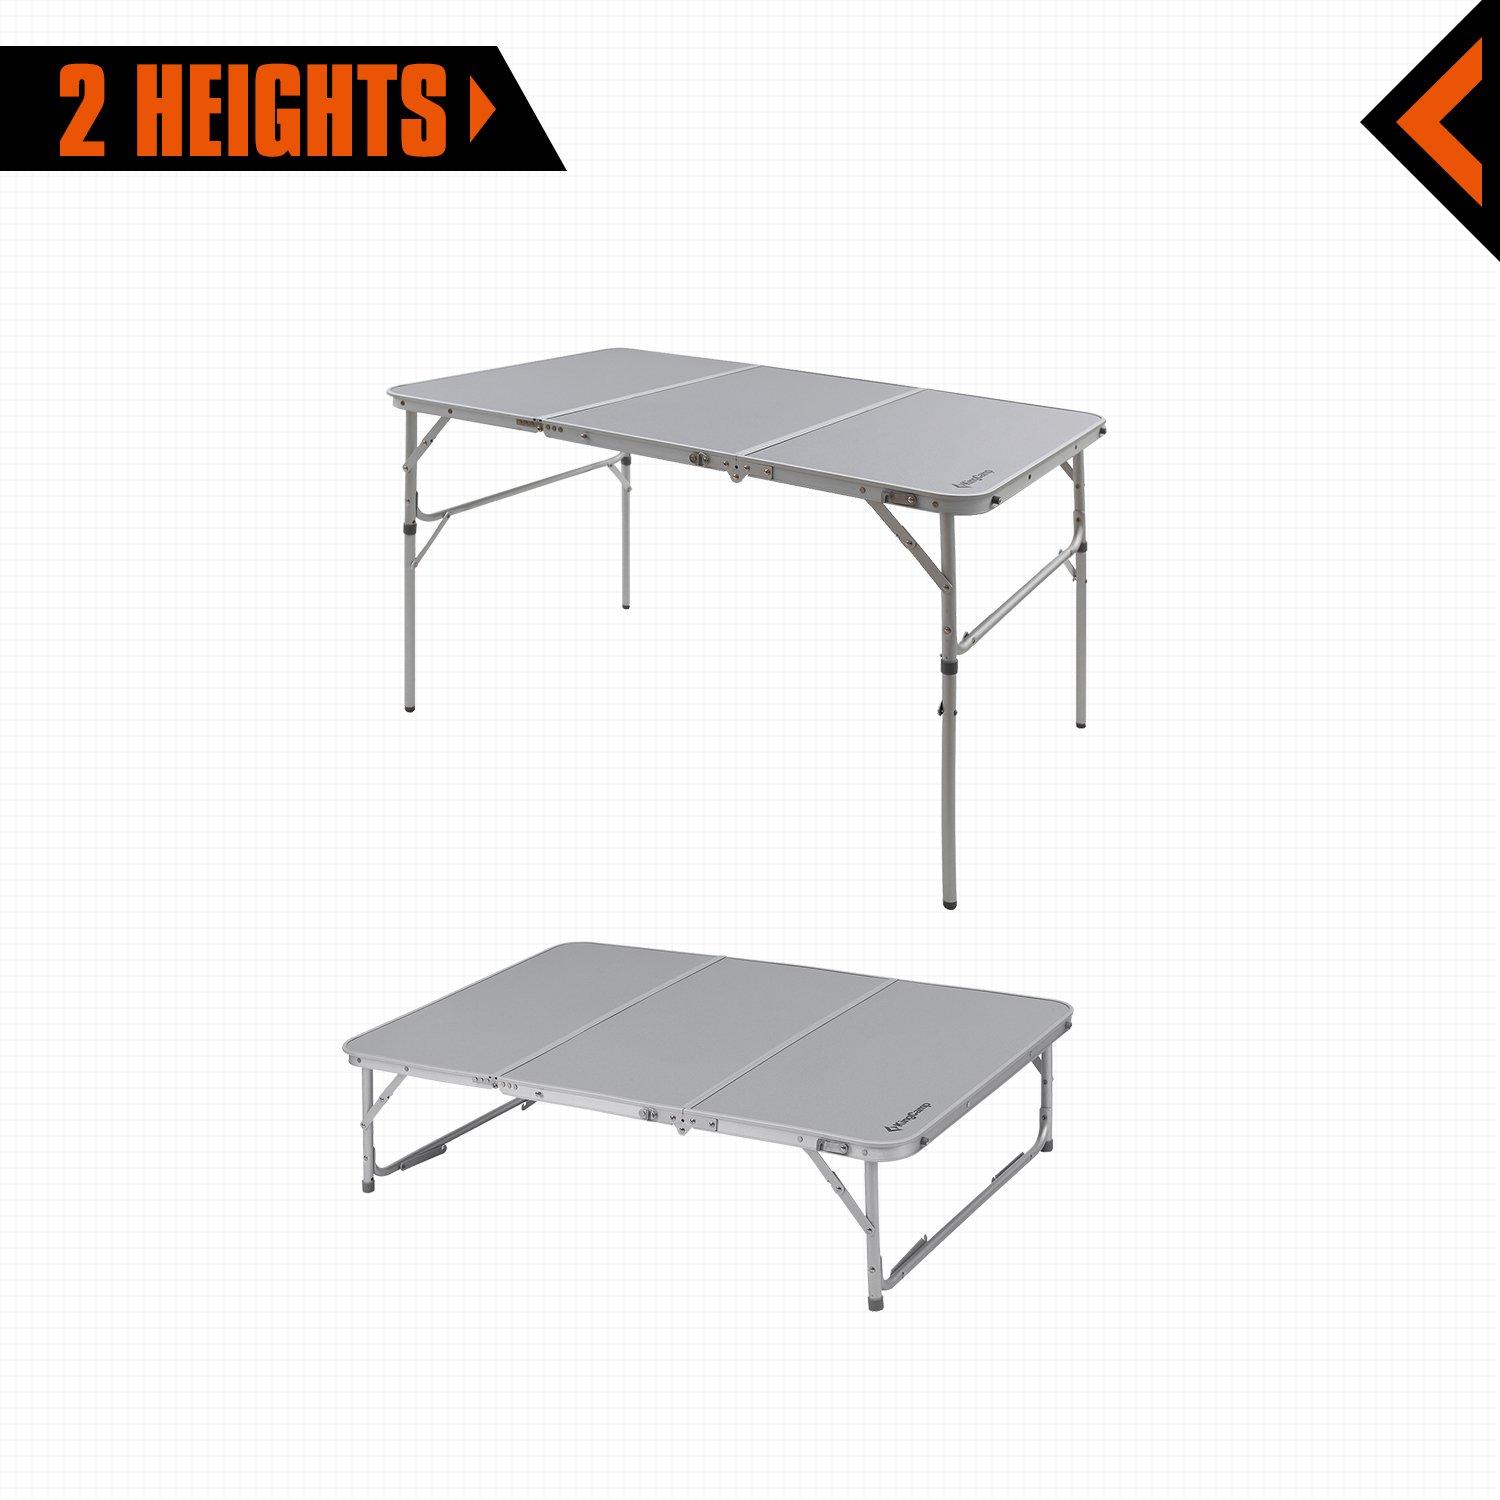 Call out Length Vacation Outdoor KingCamp Aluminum Alloy 3-Fold Camp Table with Carry Bag Adjustable Height Light Weight Collapsible Foldable Portable Sturdy Compact Storage for Camping Picnic